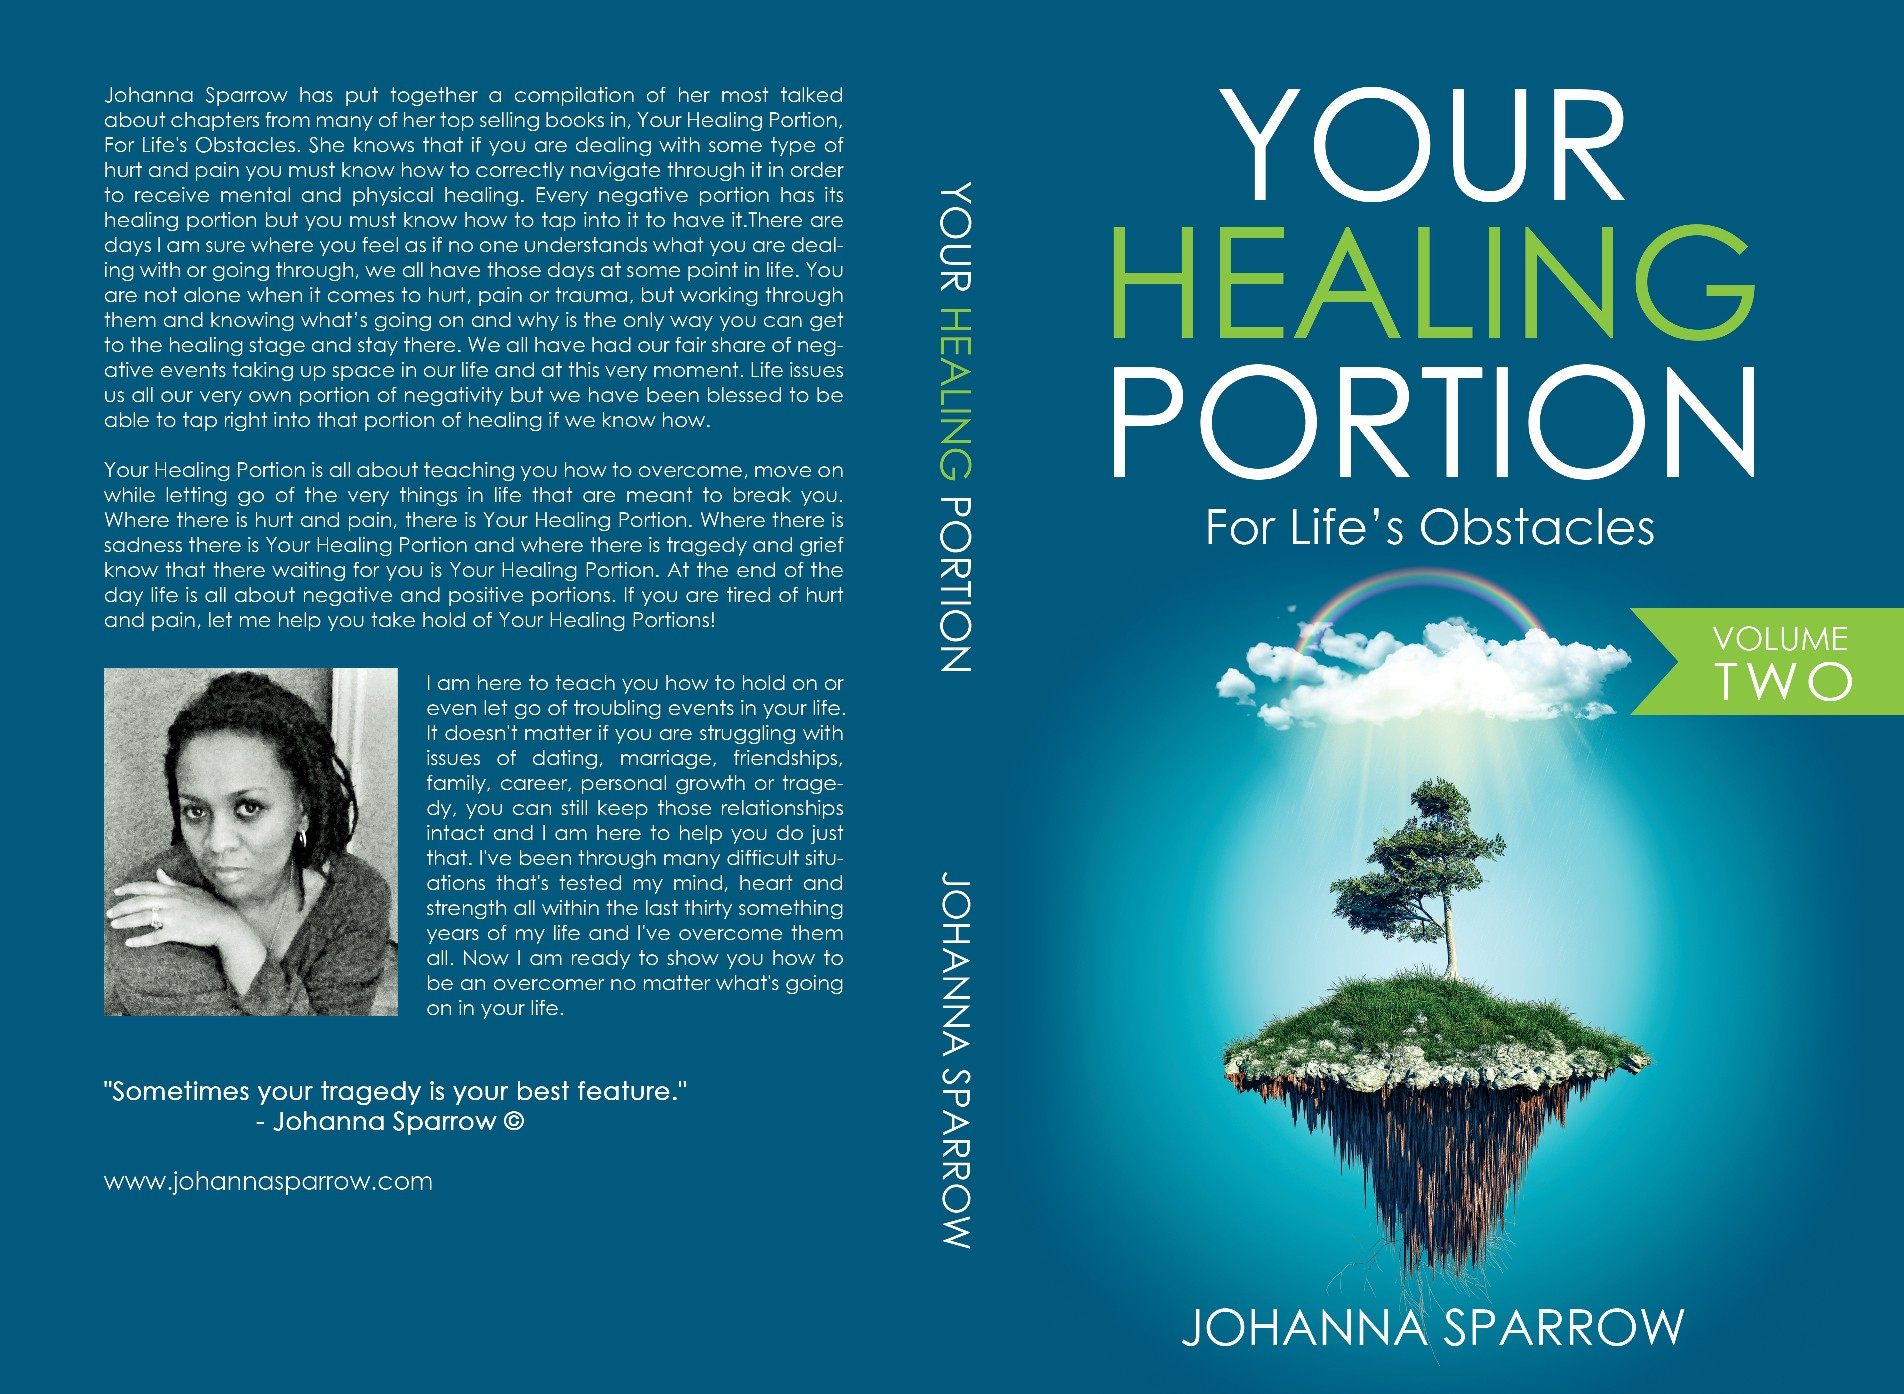 Your Healing Portion For Life's Obstacles Volume Two